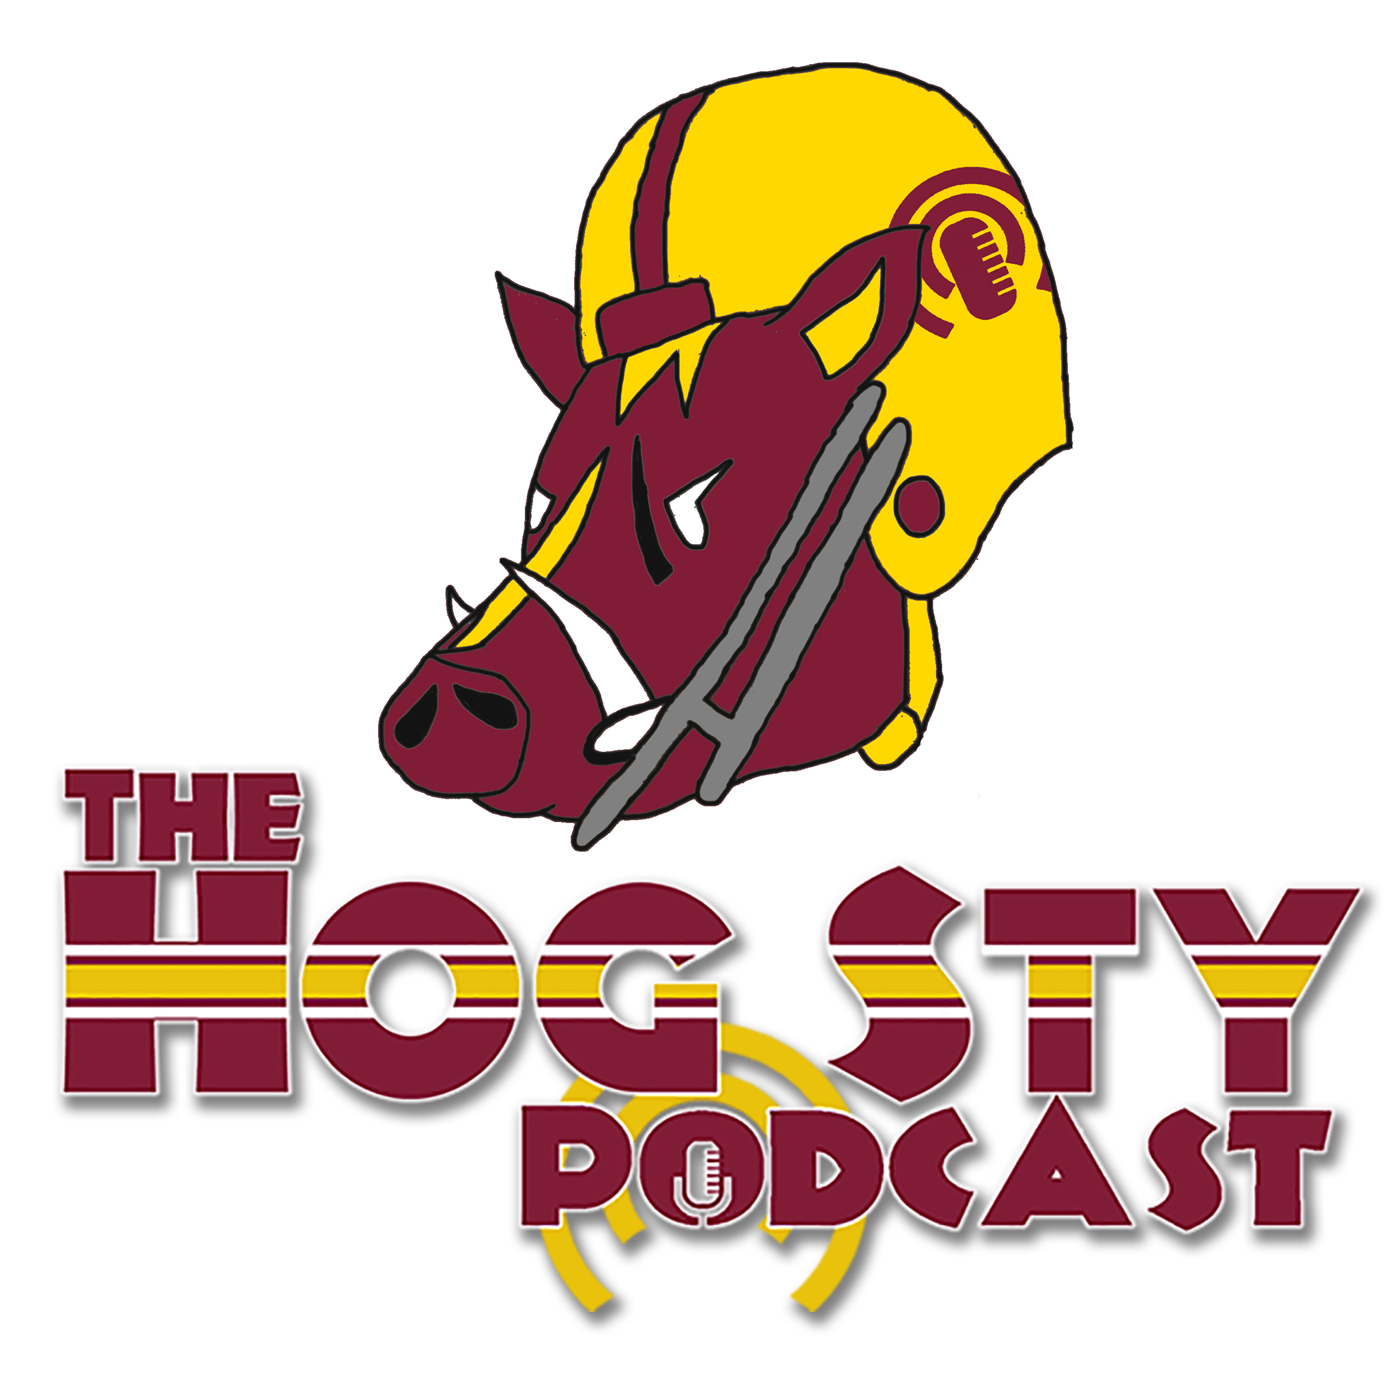 The Hog Sty: A Fan's Redskins Podcast